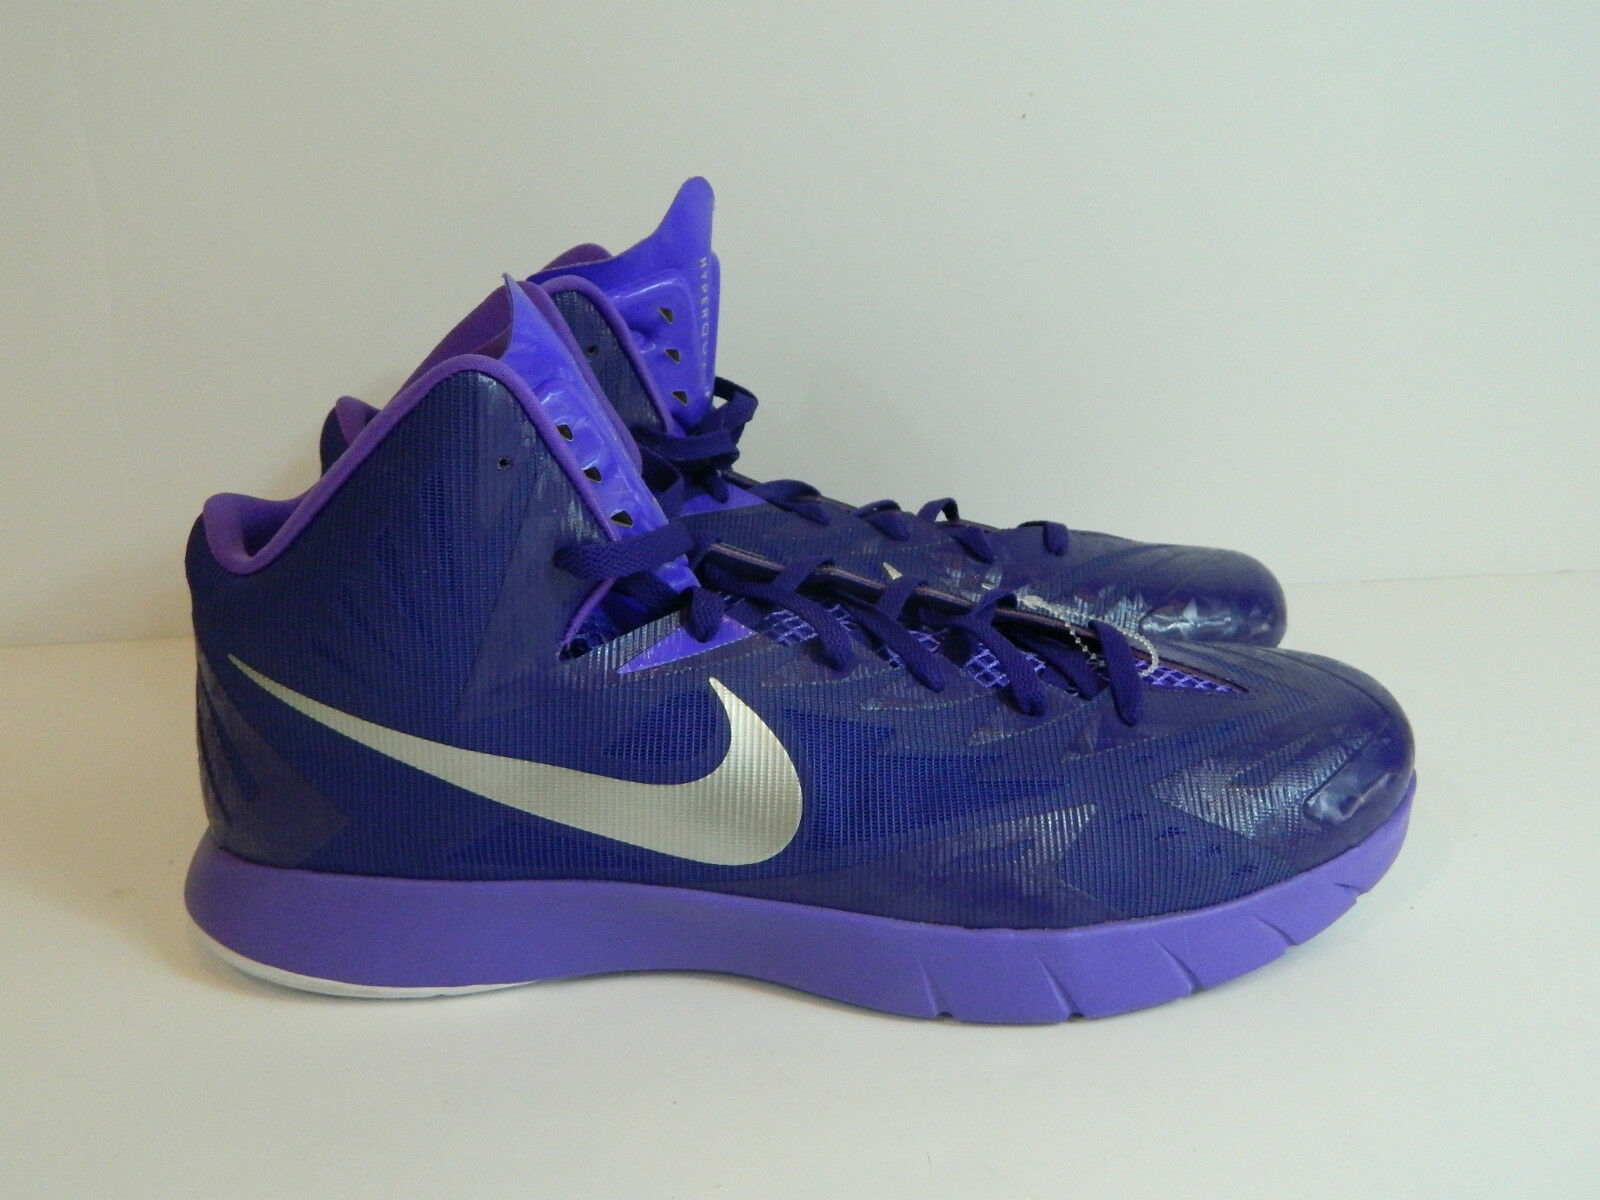 42dc16593691 ... Nike Lunarlon Hyperquickness Basketball Shoes Sneakers Purple Size 17  NWOB bbaa19 ...